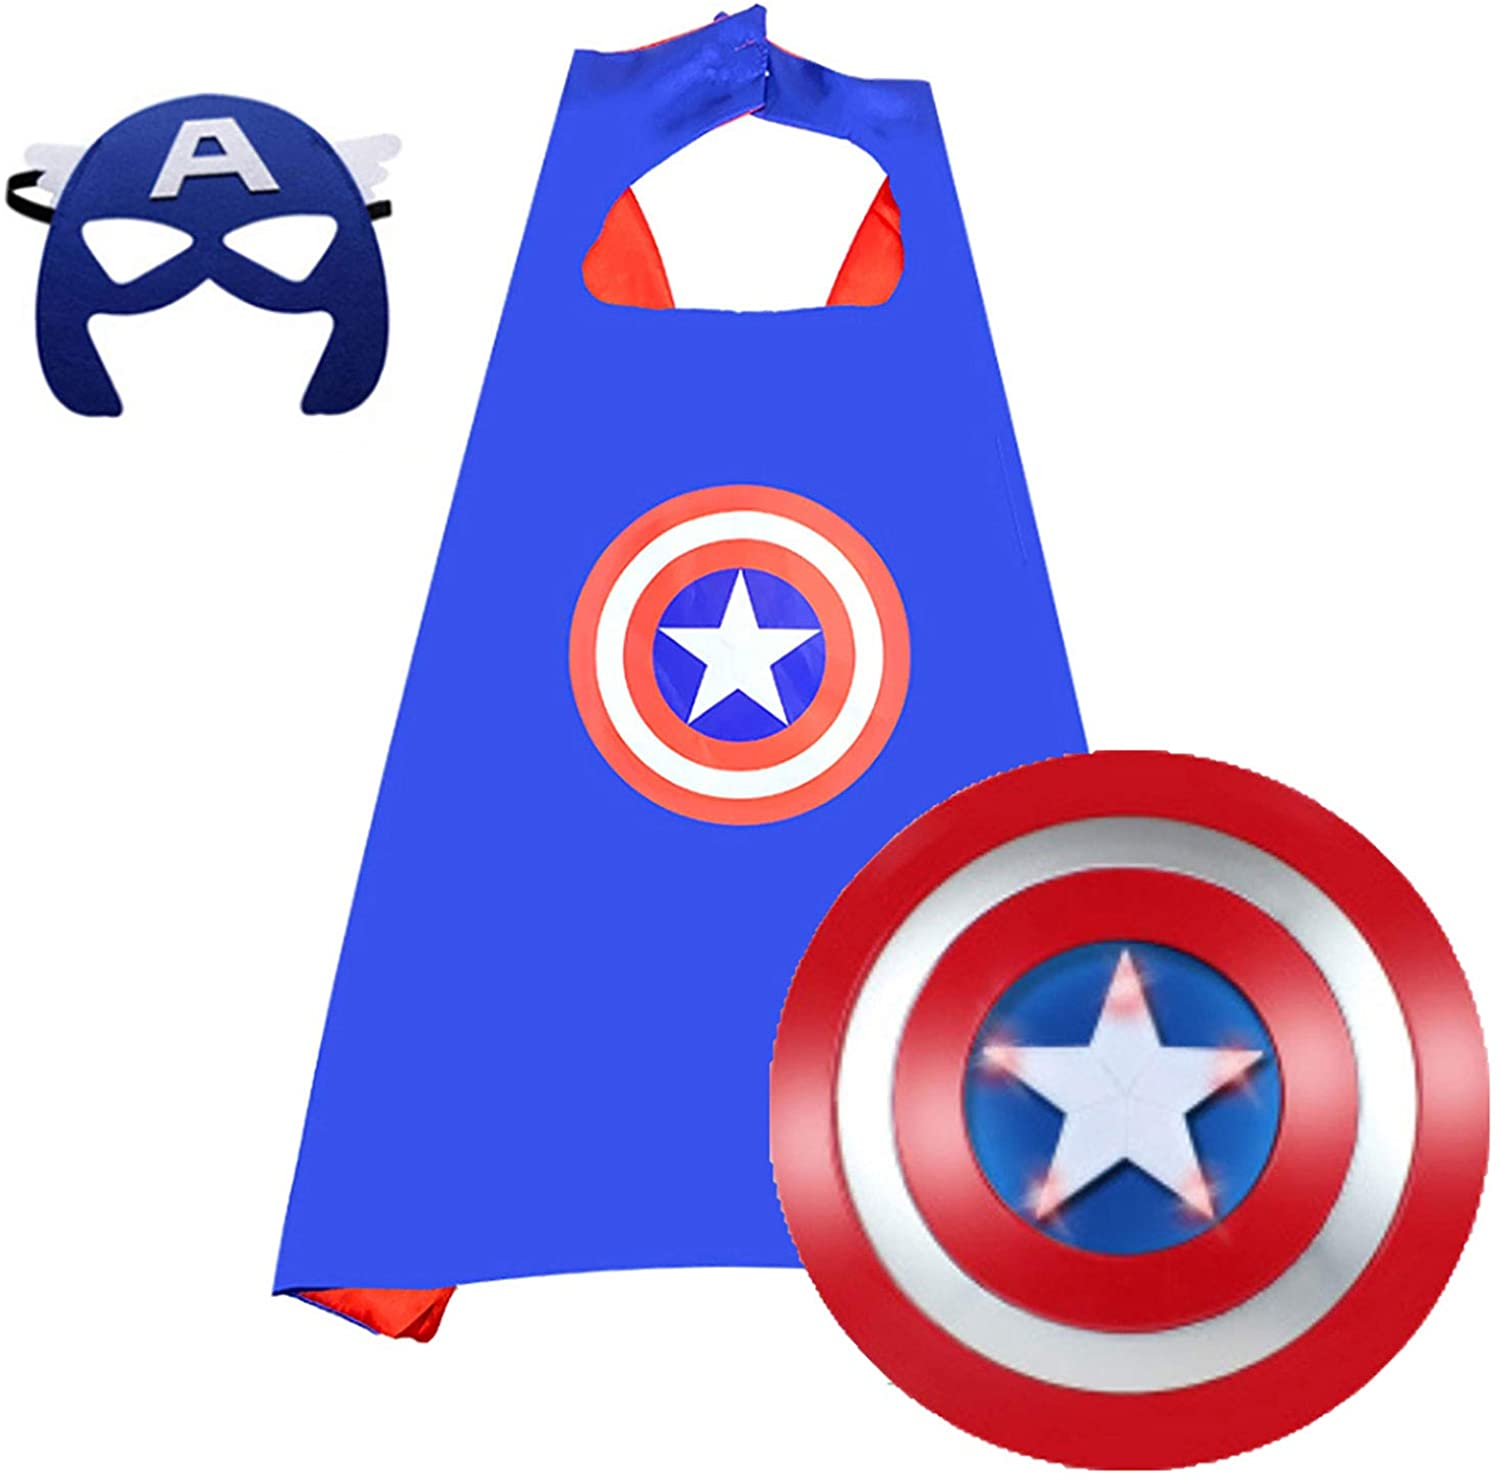 Captain America Shield Cape and Mask Set Kids Avengers Cosplay Toys Superhero Dress Up Costumes for Boys